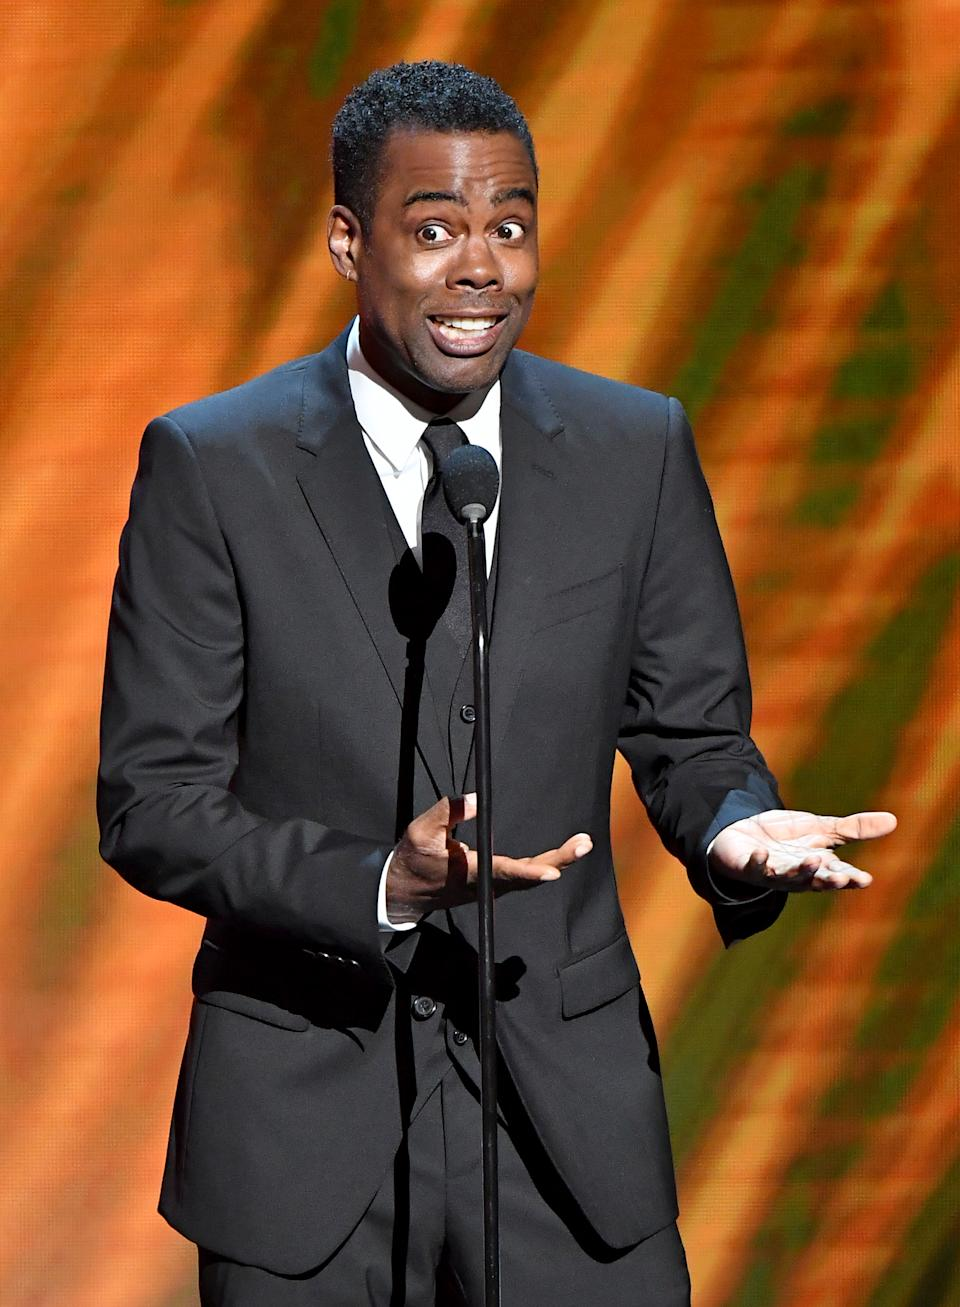 HOLLYWOOD, CALIFORNIA - MARCH 30: Chris Rock speaks onstage at the 50th NAACP Image Awards at Dolby Theatre on March 30, 2019 in Hollywood, California. (Photo by Earl Gibson III/Getty Images for NAACP)